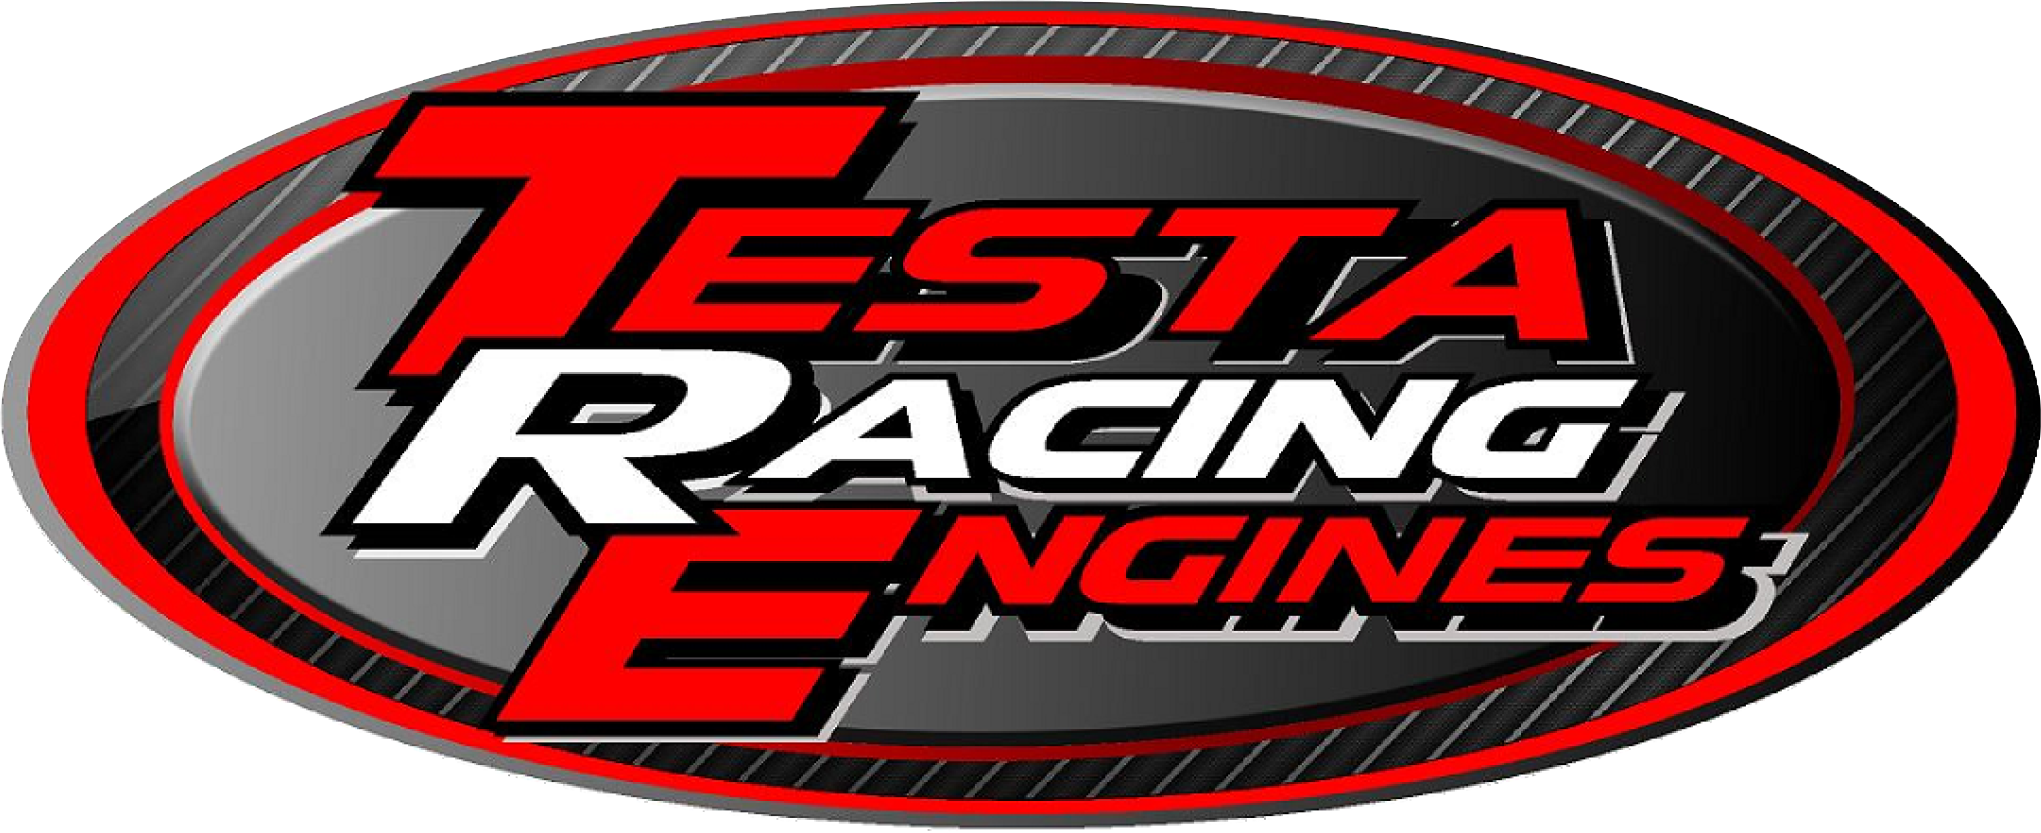 Testa Racing Engines